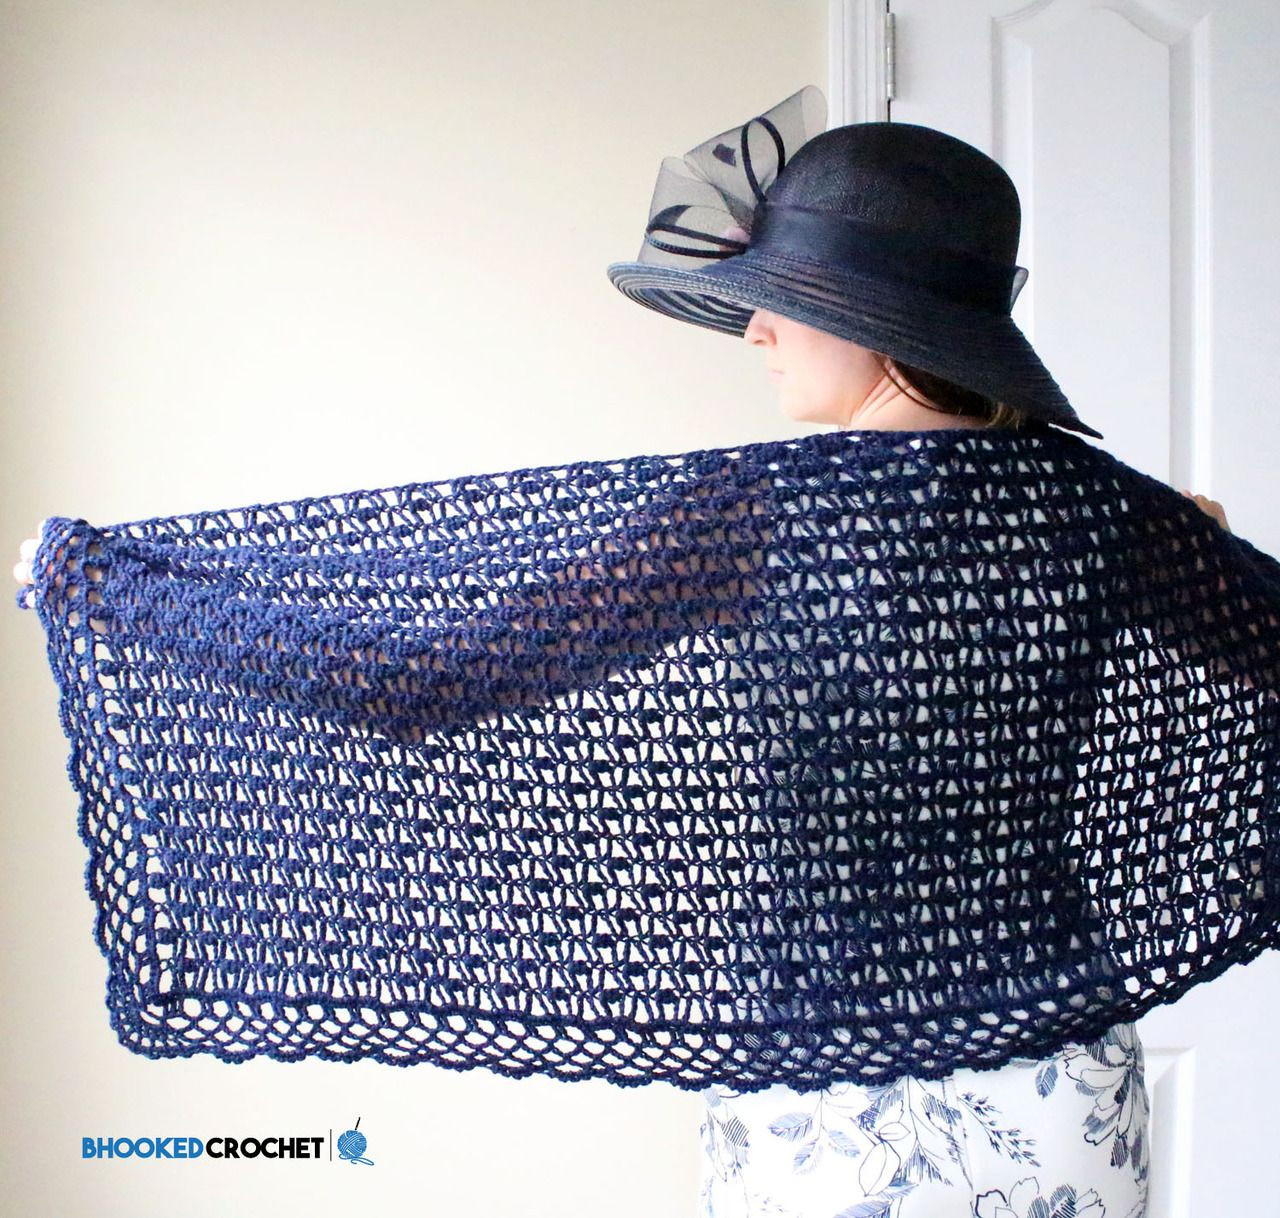 Unique Day at the Oaks Lace Crochet Wrap Free Pattern Crochet Shawl Patterns and Wraps Of Amazing 43 Images Crochet Shawl Patterns and Wraps